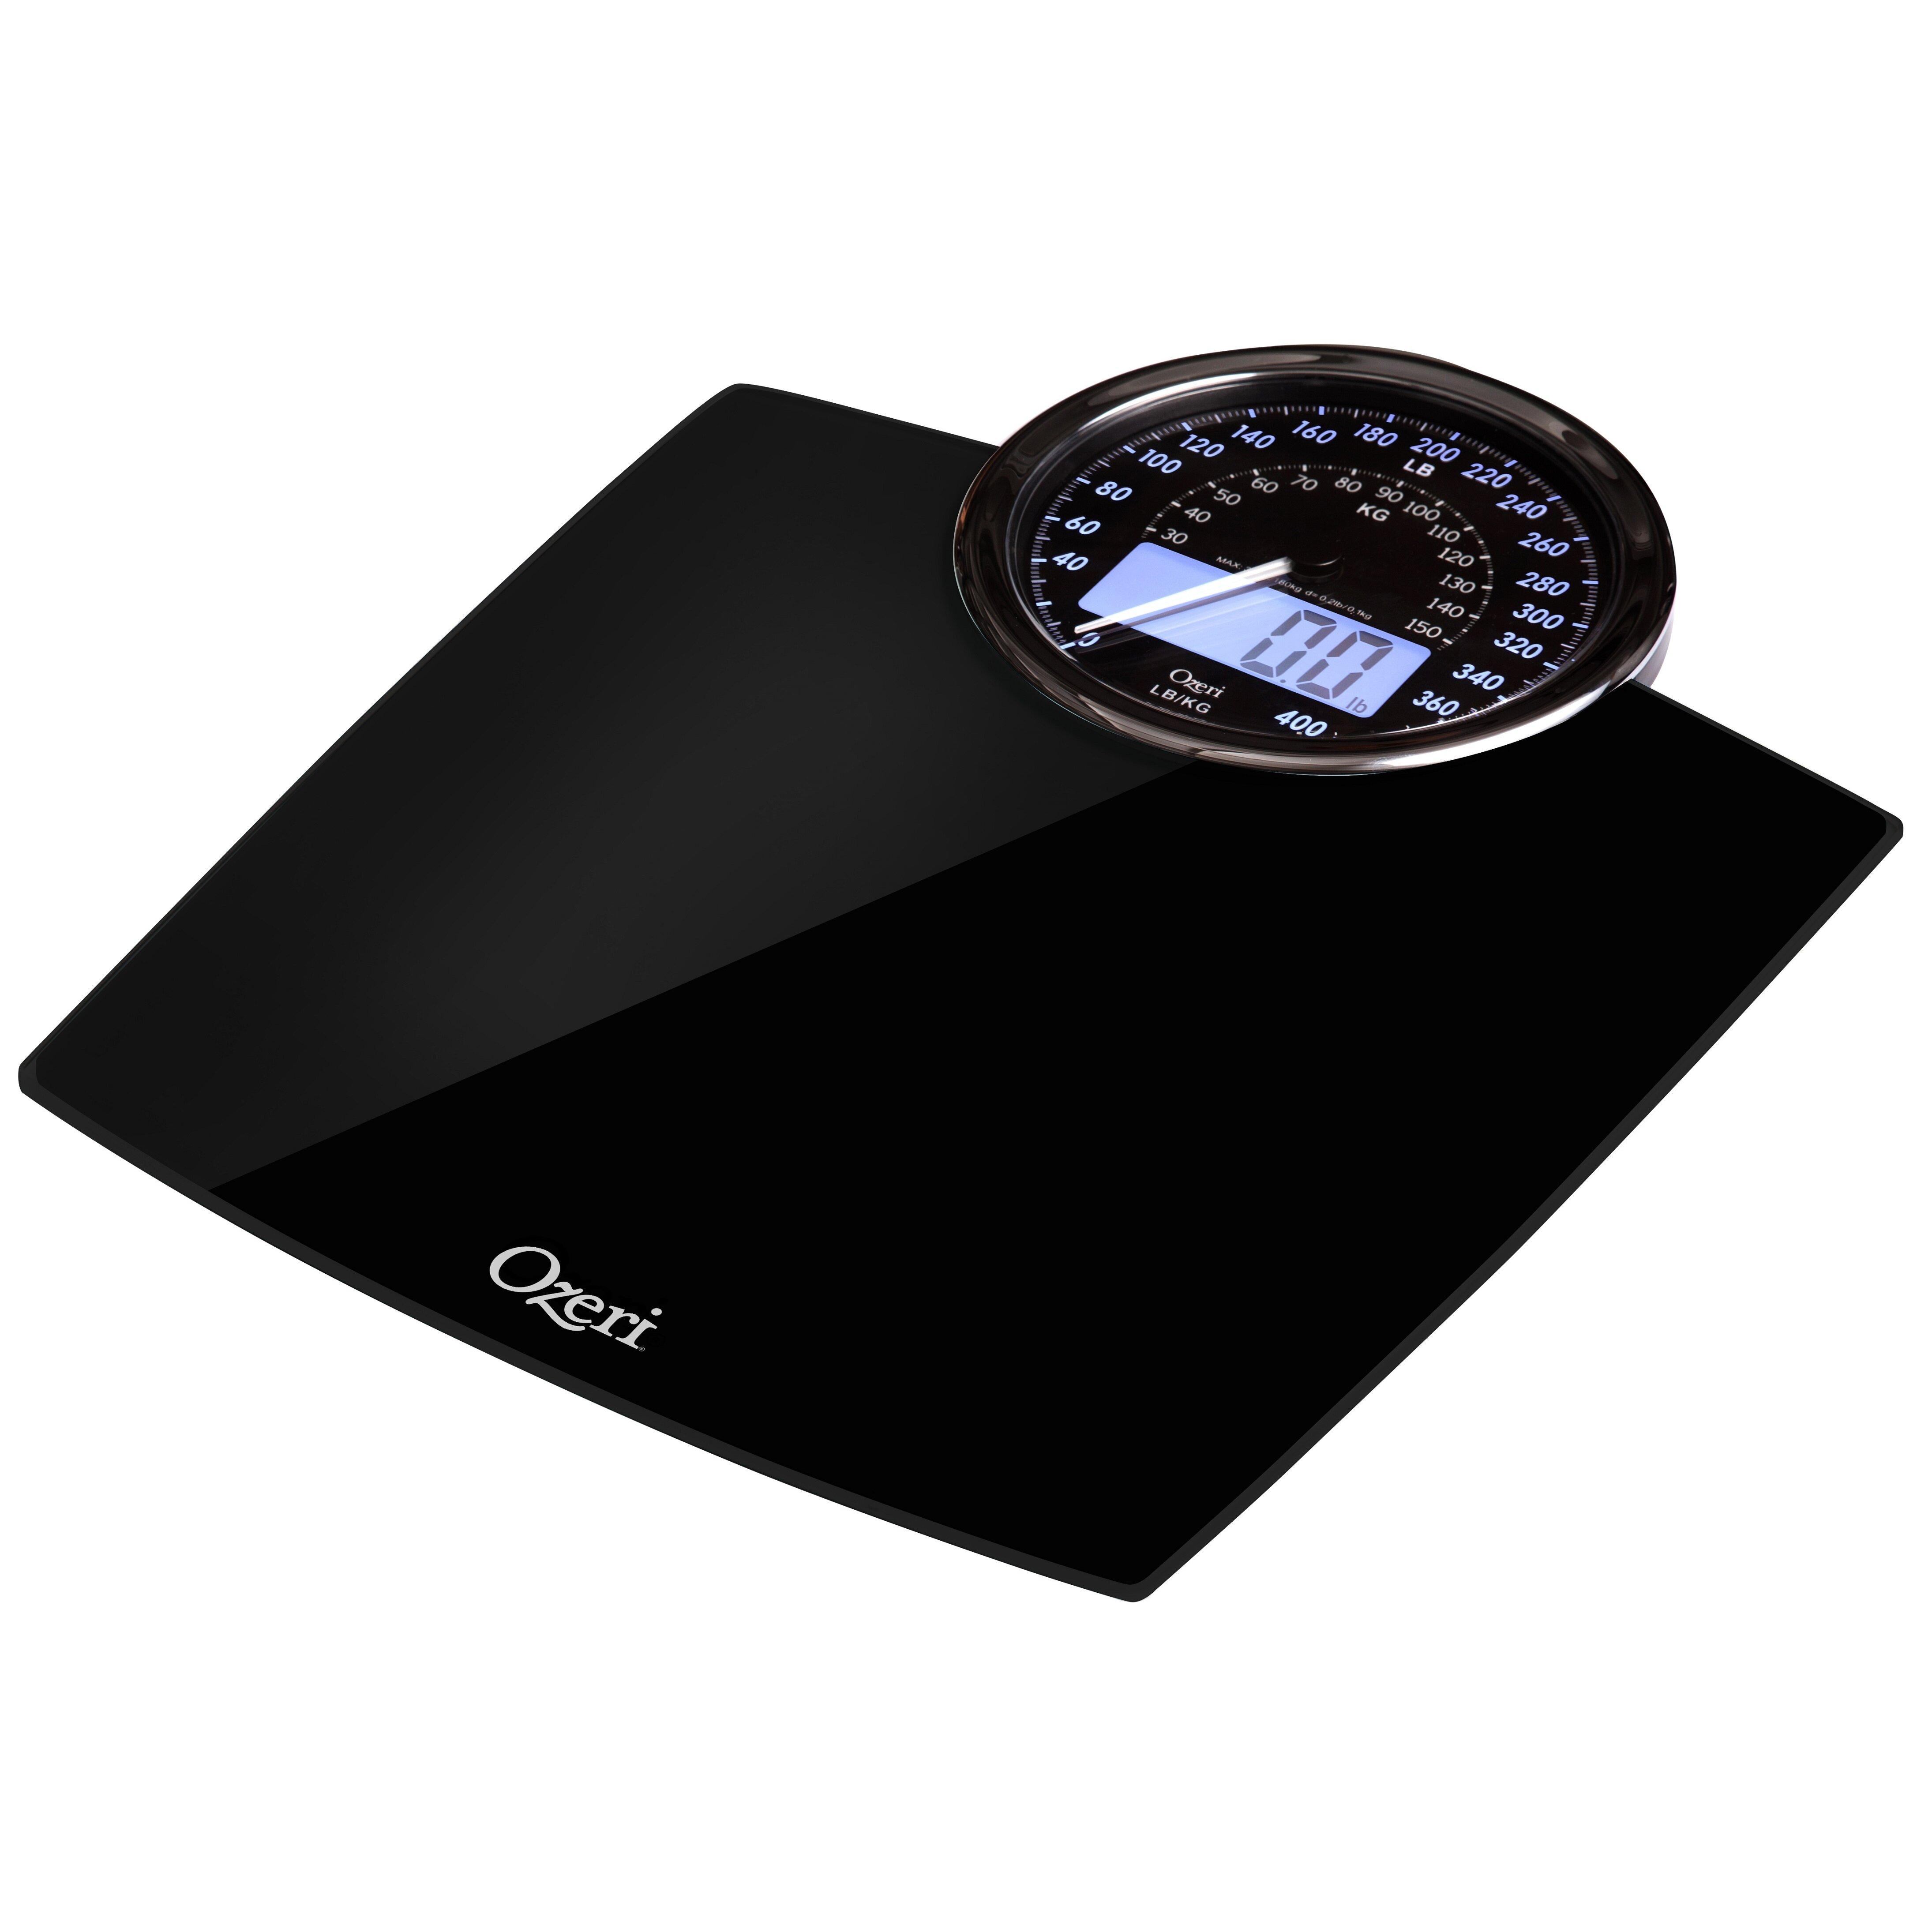 Next Bathroom Scales 28 Images Bathroom Scale 270kg Max Www Classifieds Co Zw Scales Scales